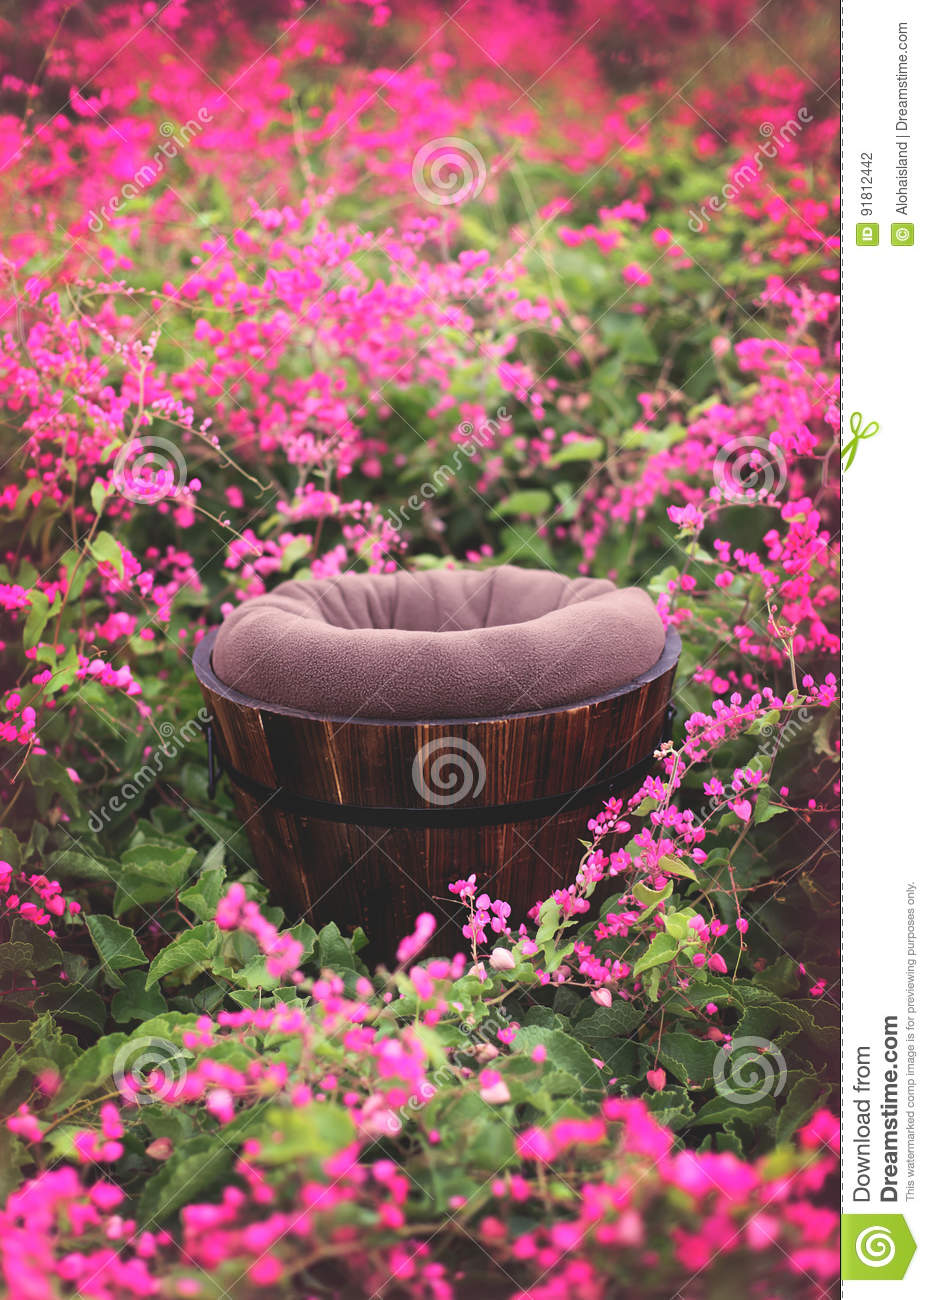 Outdoor Flower Field Digital Background Prop Stock Photo Image Of Brown Photography 91812442